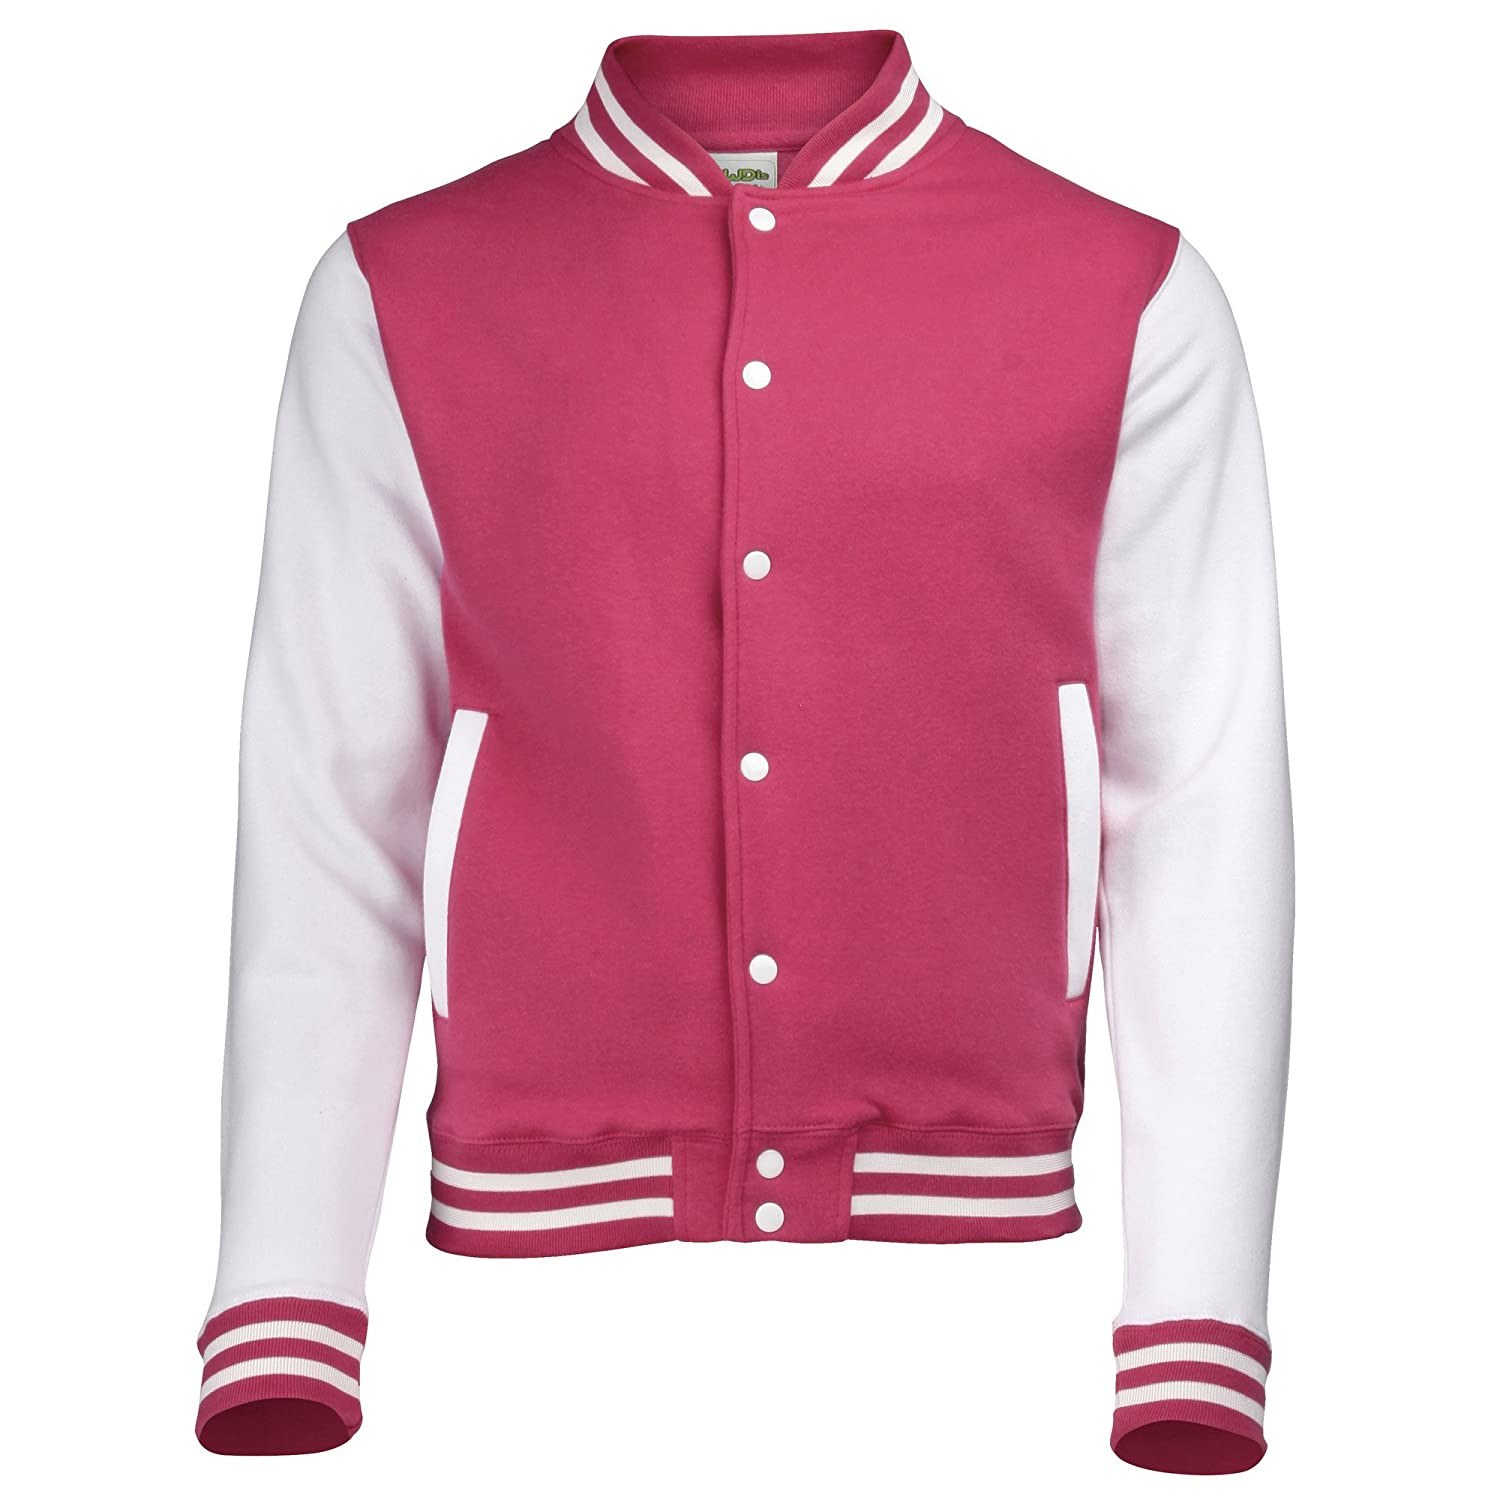 Awdis Varsity jacket: Amazon.co.uk: Clothing